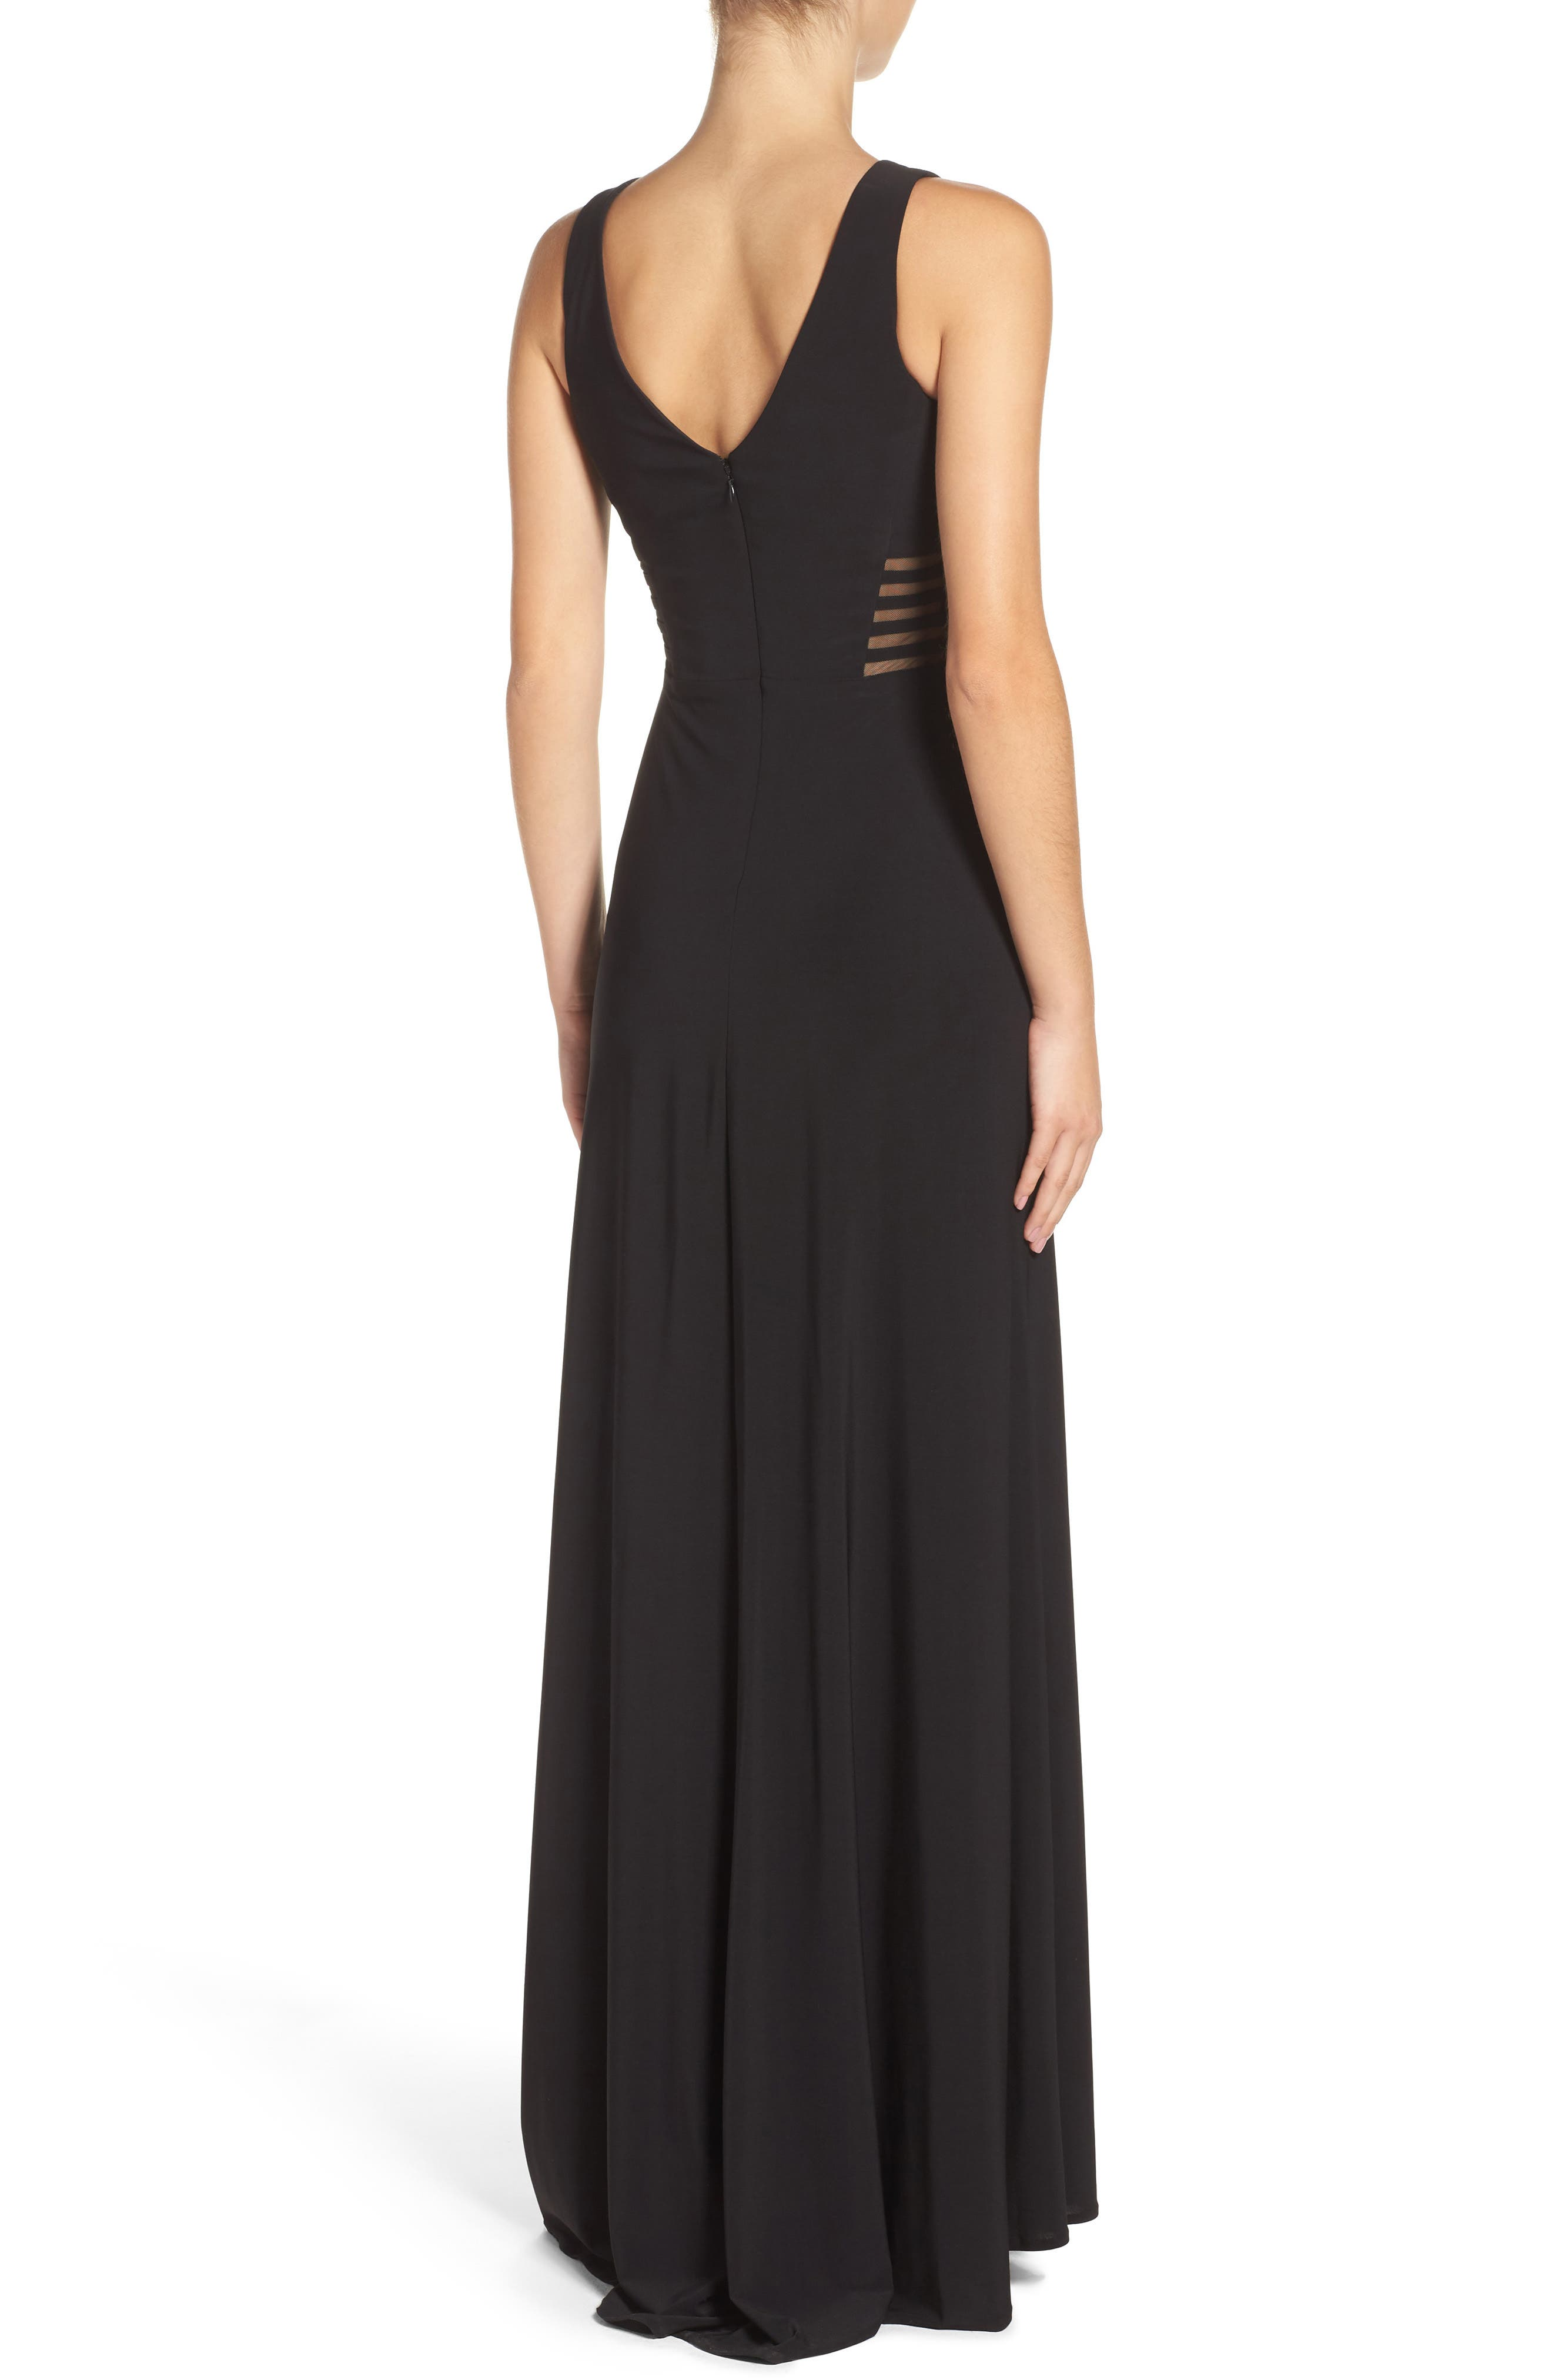 MORGAN & CO., Illusion Gown, Alternate thumbnail 2, color, BLACK